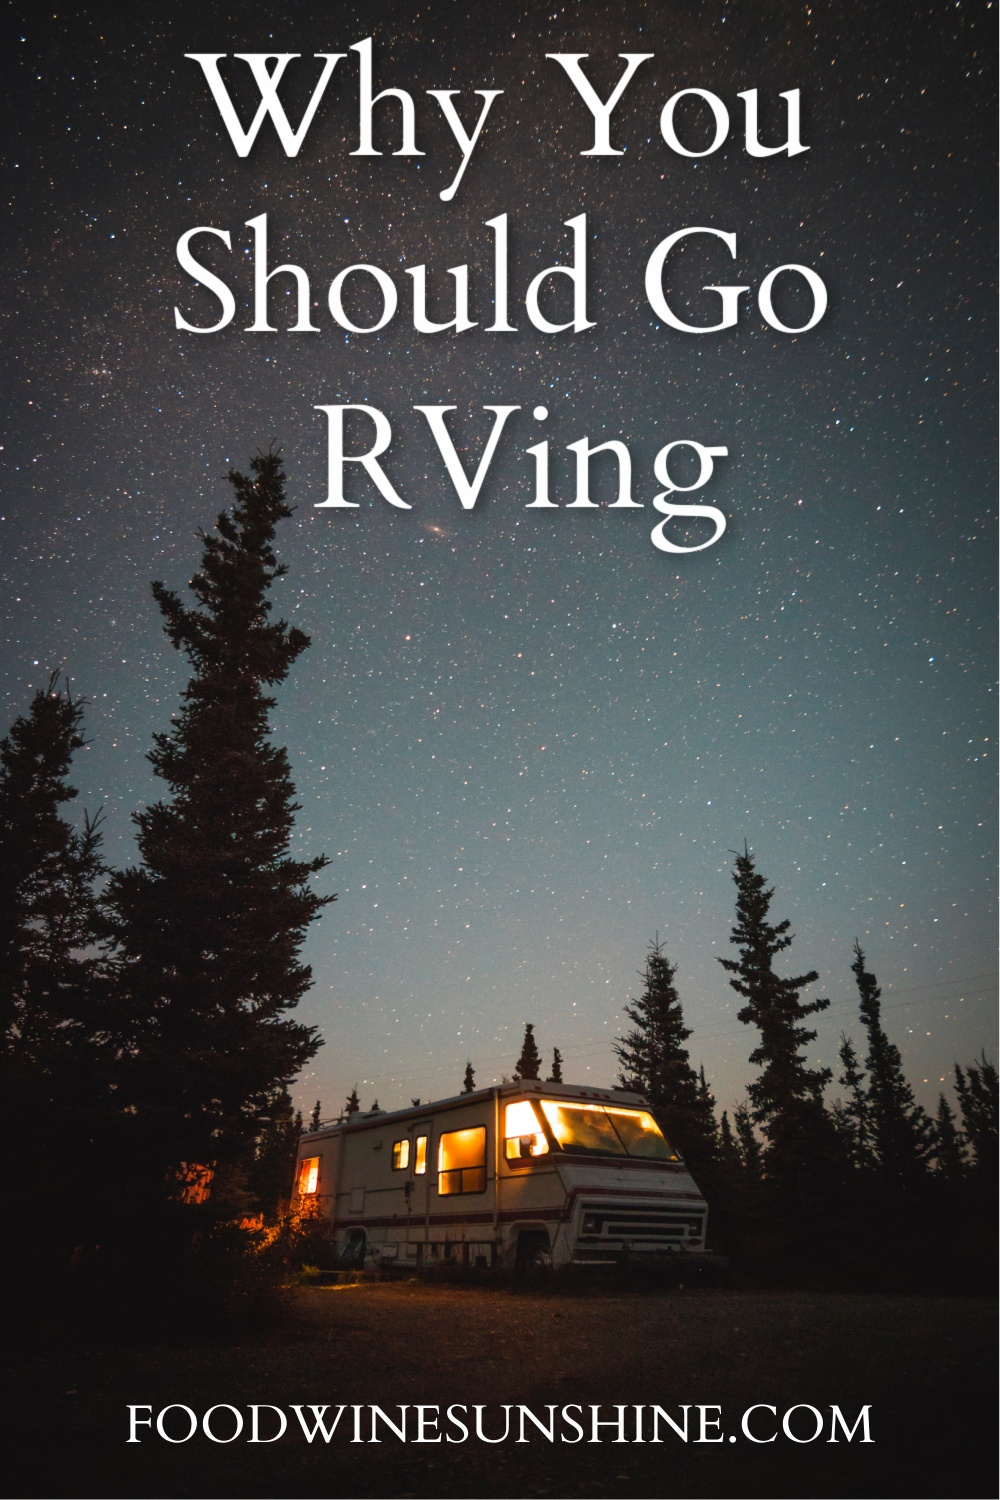 Why You Should Go RVing